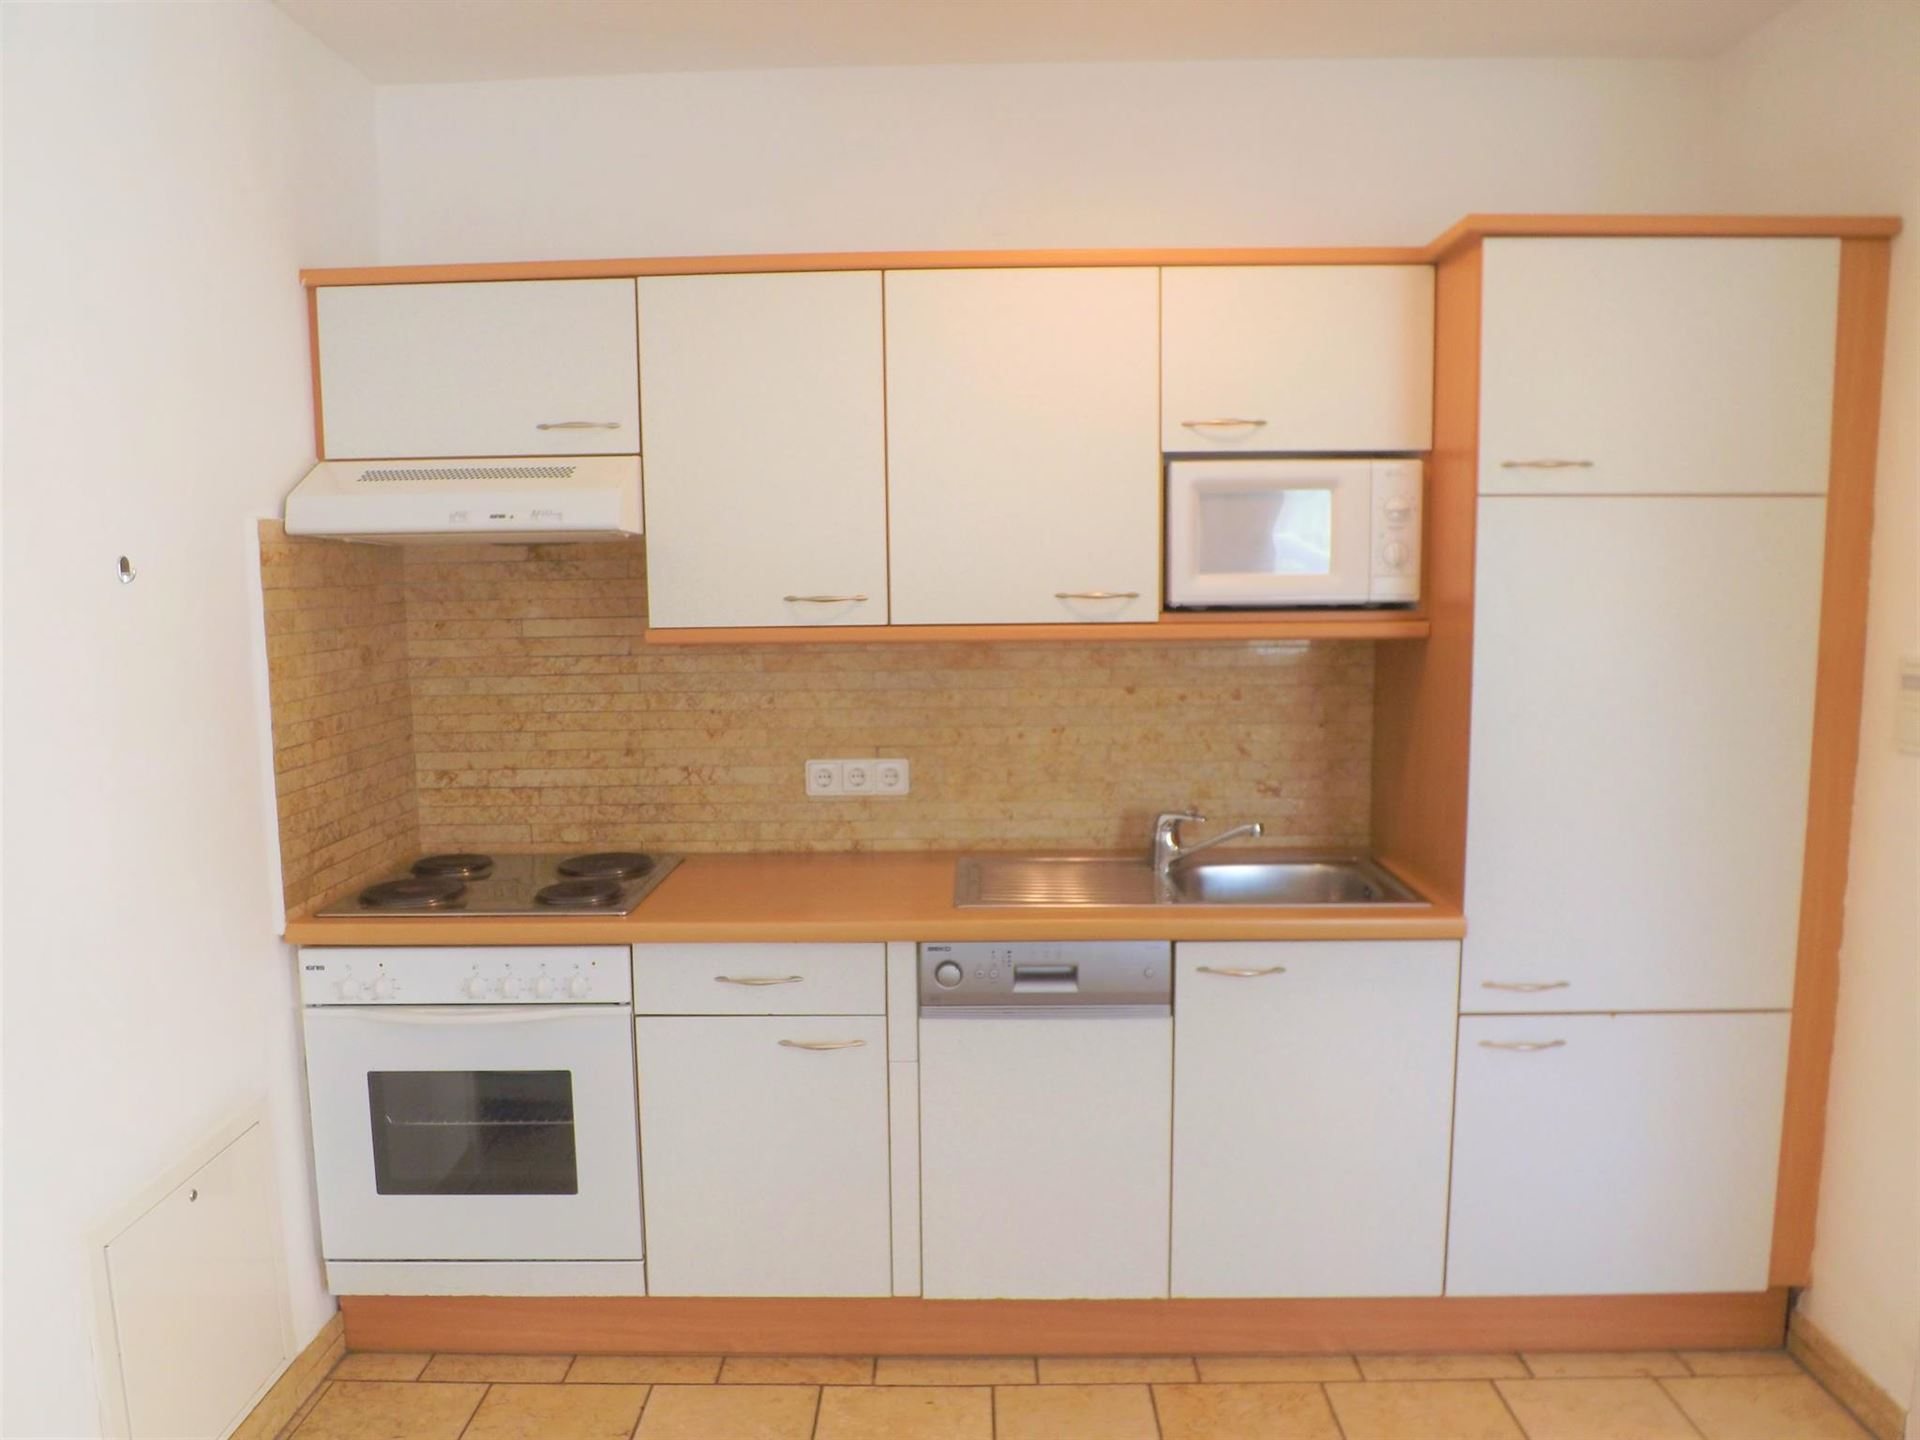 2/4 PERSON - KITCHEN (INC DISHWASHER)